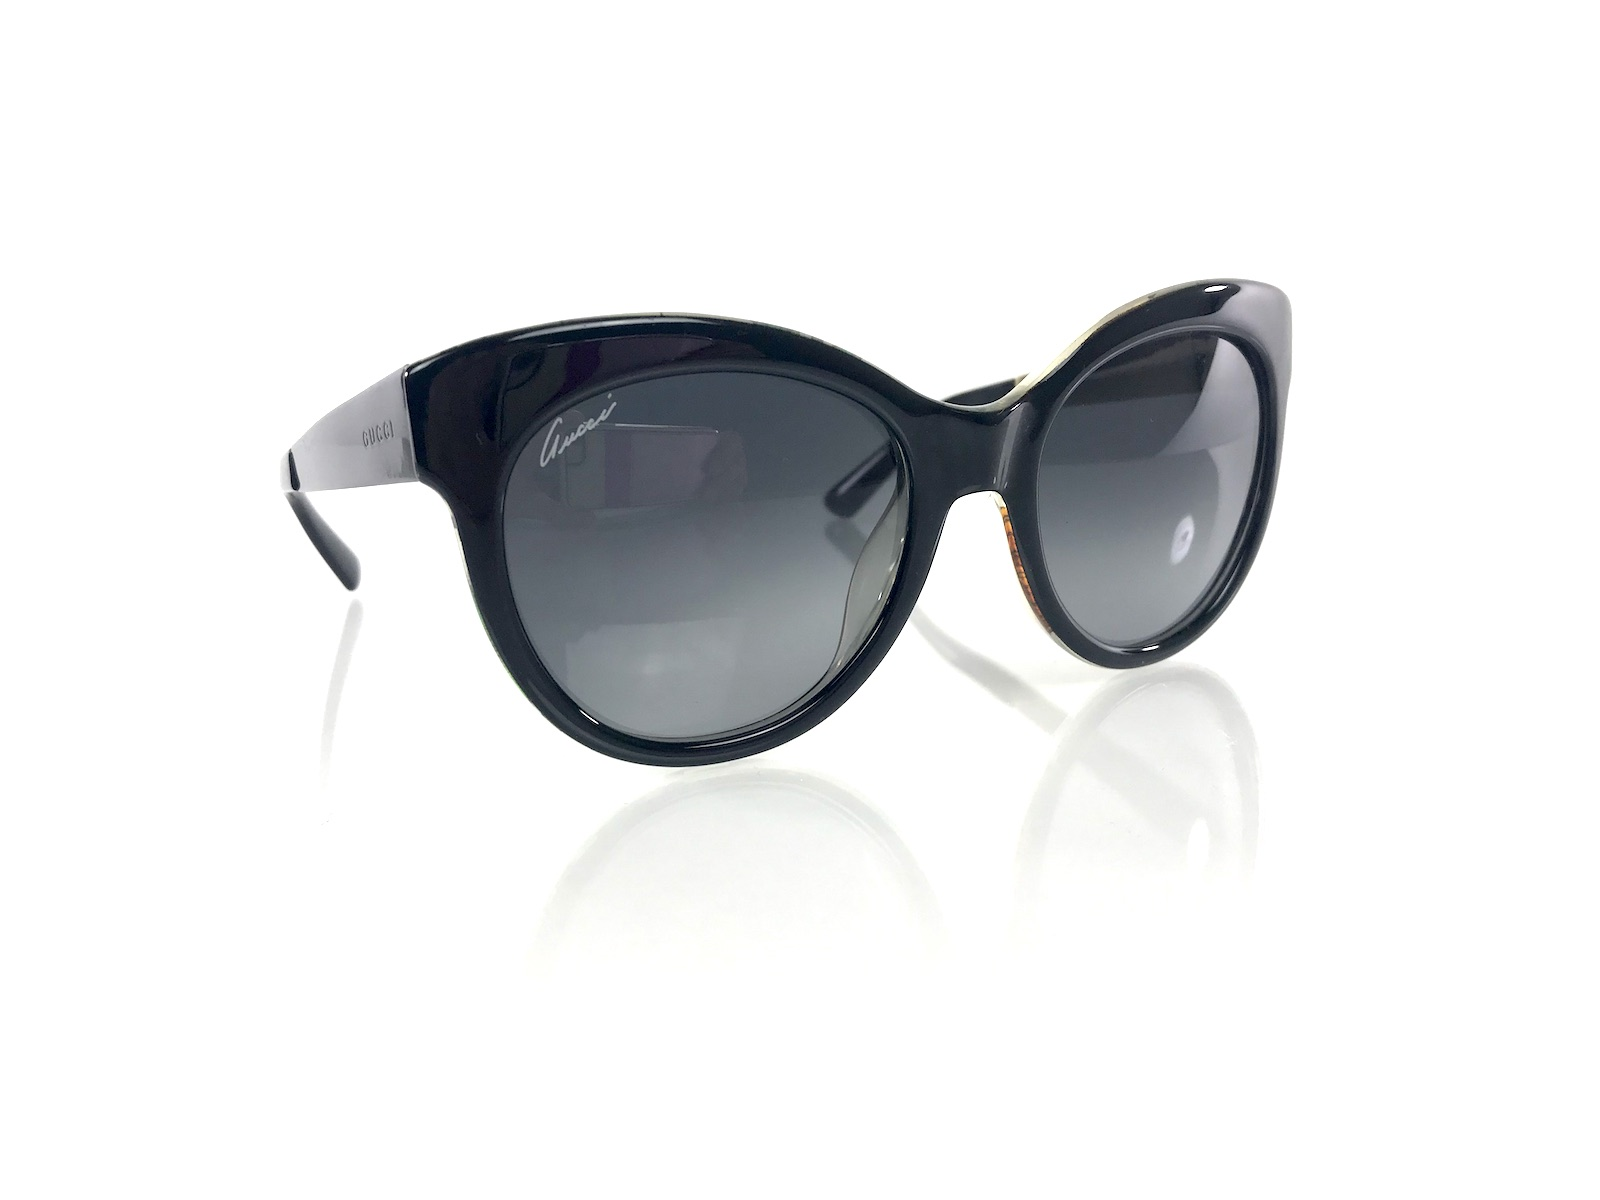 c9c838a35 Gucci Acetate Oversized Cat-Eye Floral Sunglasses – Fashion Reloved